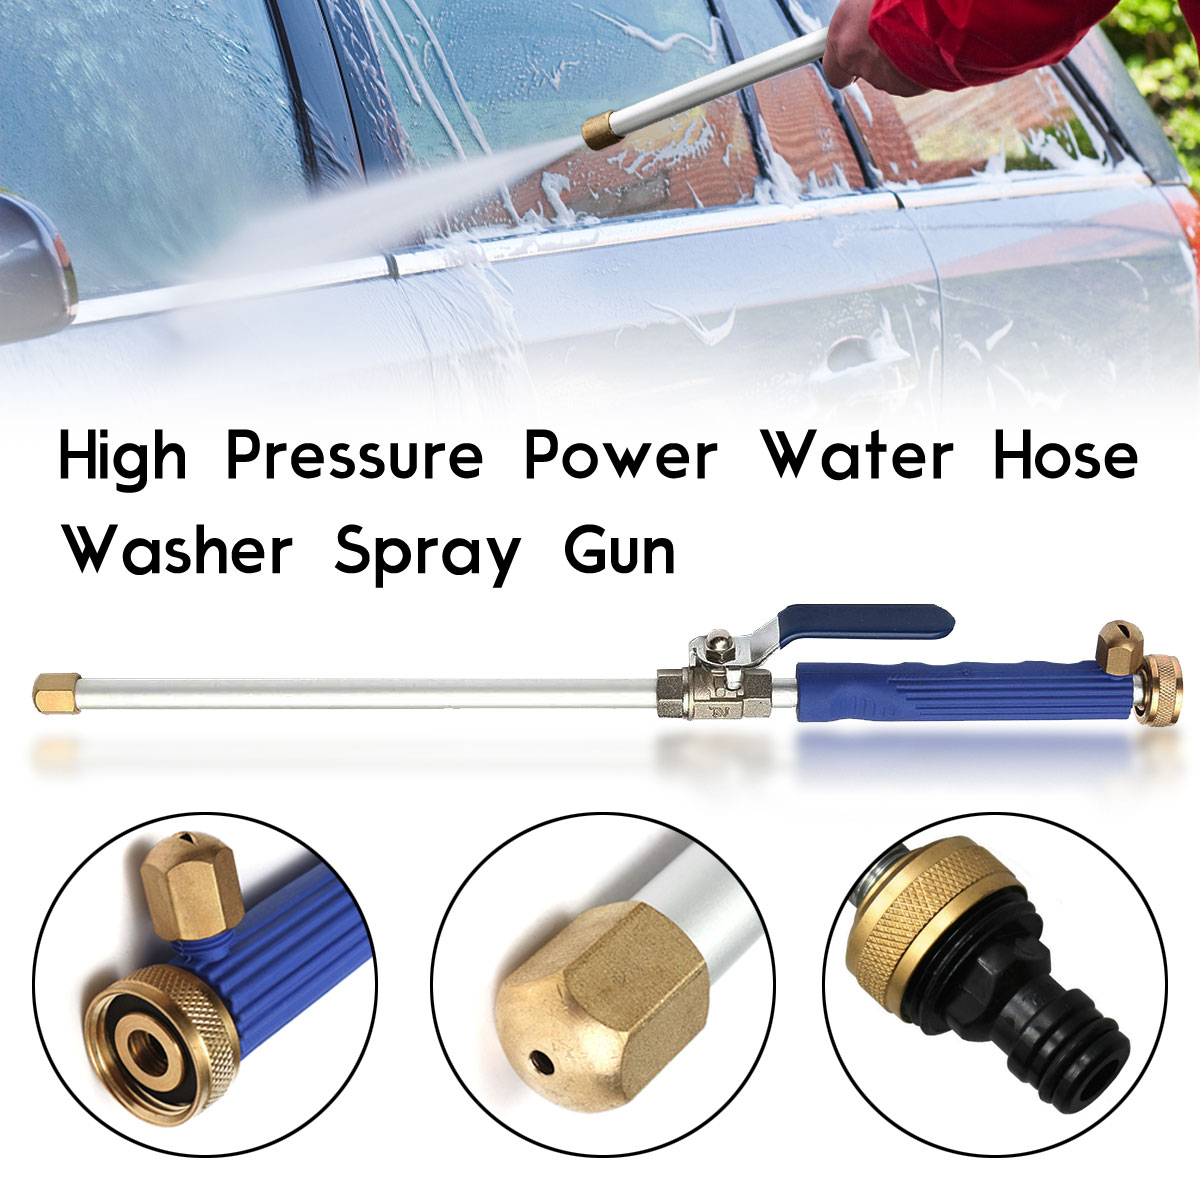 "18"" Aluminum High Pressure Power Washer Spray Nozzle Water Hose Wand Attachment Cleaning Tool Garden Car Washing"